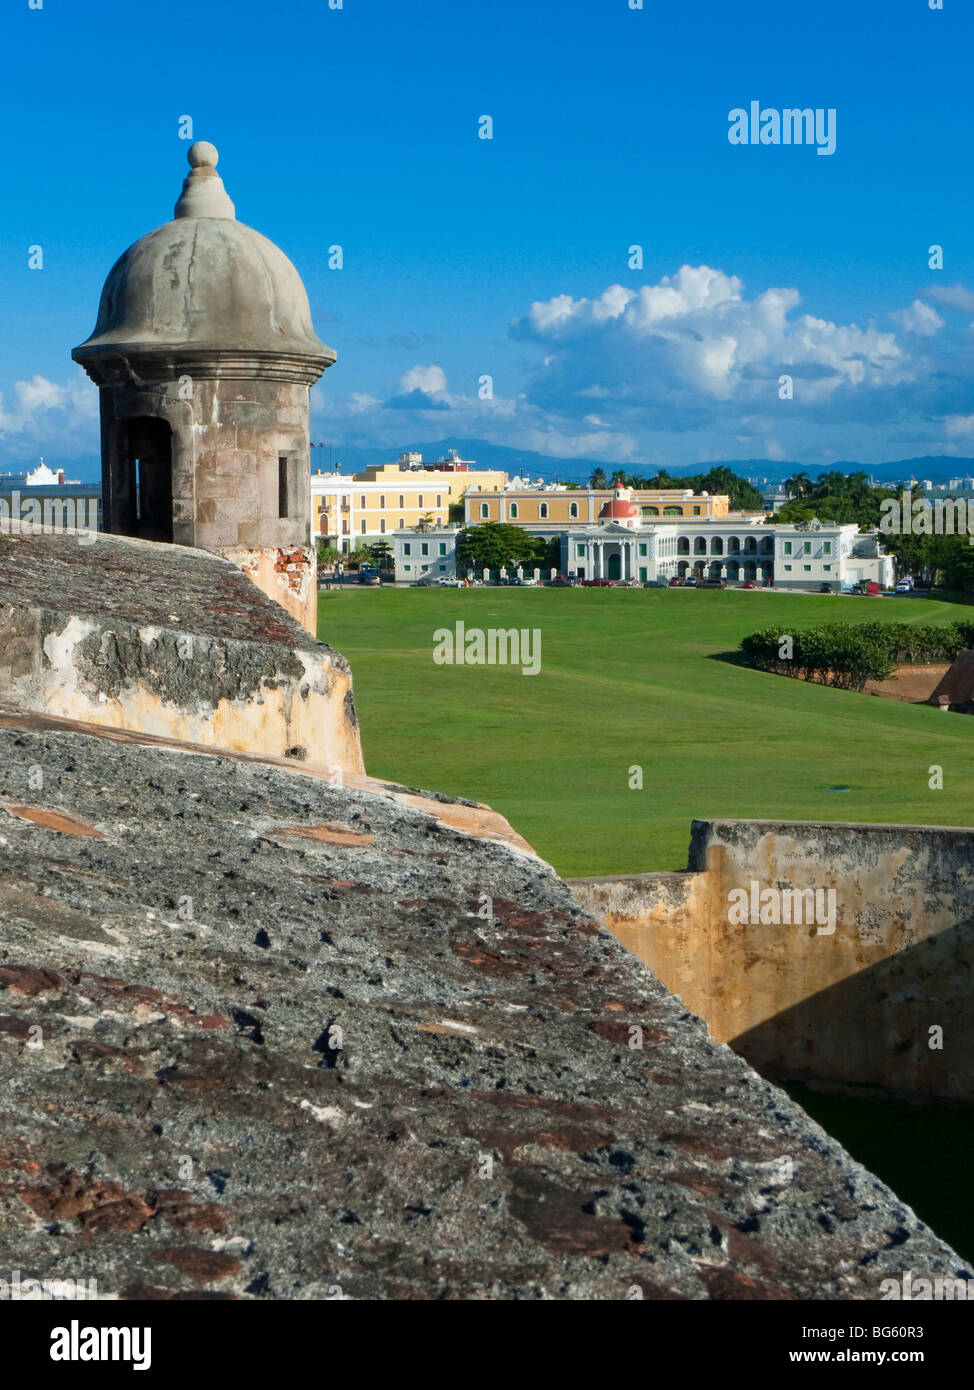 Sentry Box, El Morro Fort with the Ballaja Barracks in the Background, Old San Juan, Puerto Rico - Stock Image